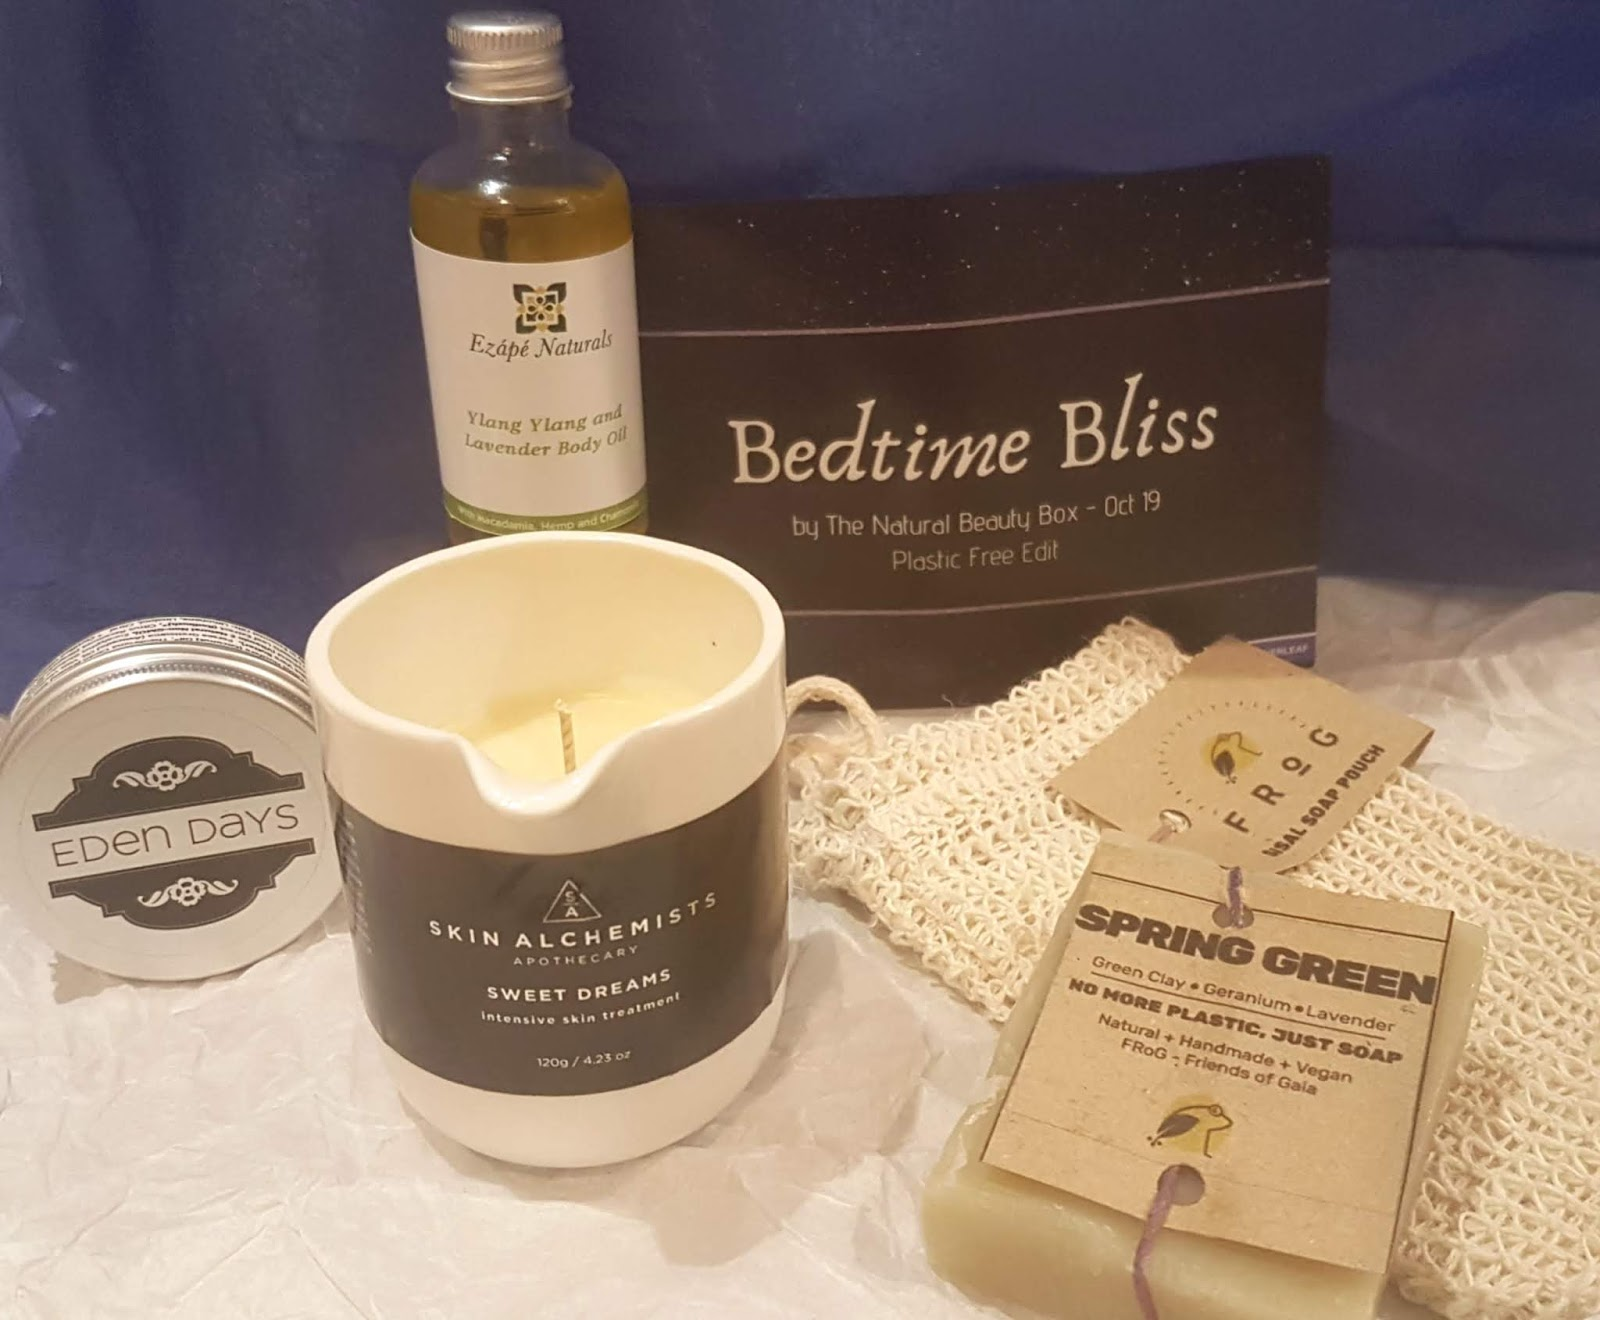 The Natural Beauty Box - Bedtime Bliss Review